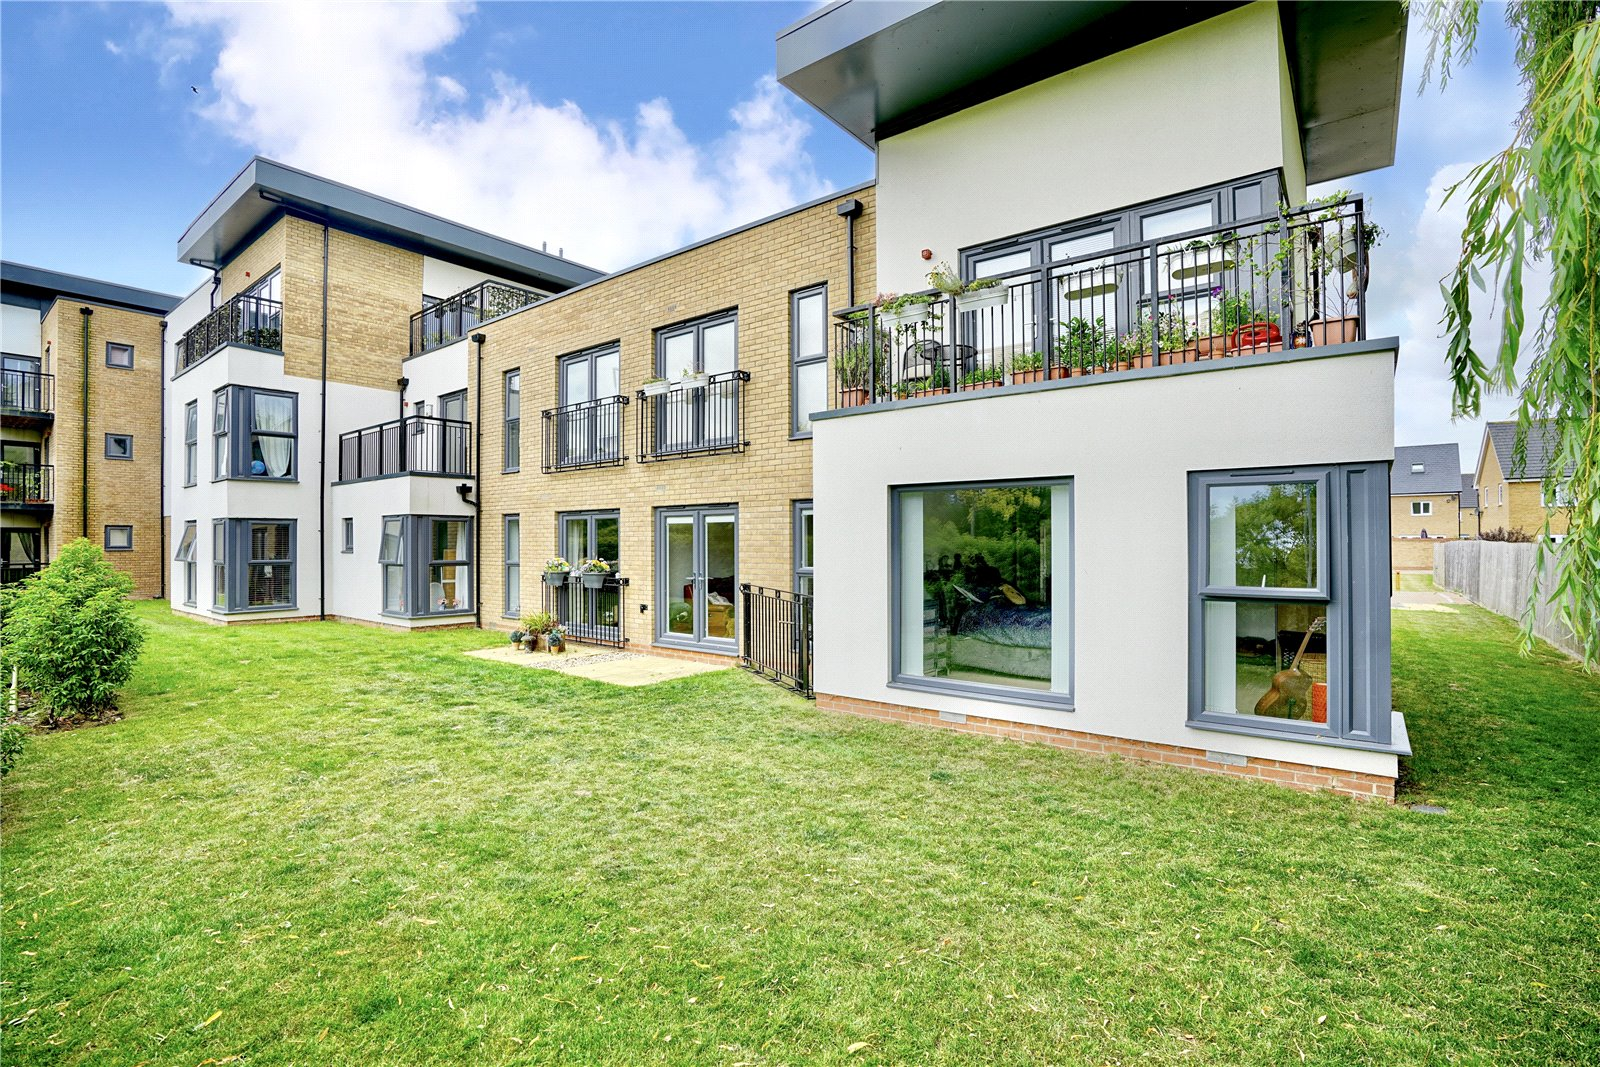 2 bed for sale in Mill Court, Papworth Everard, CB23